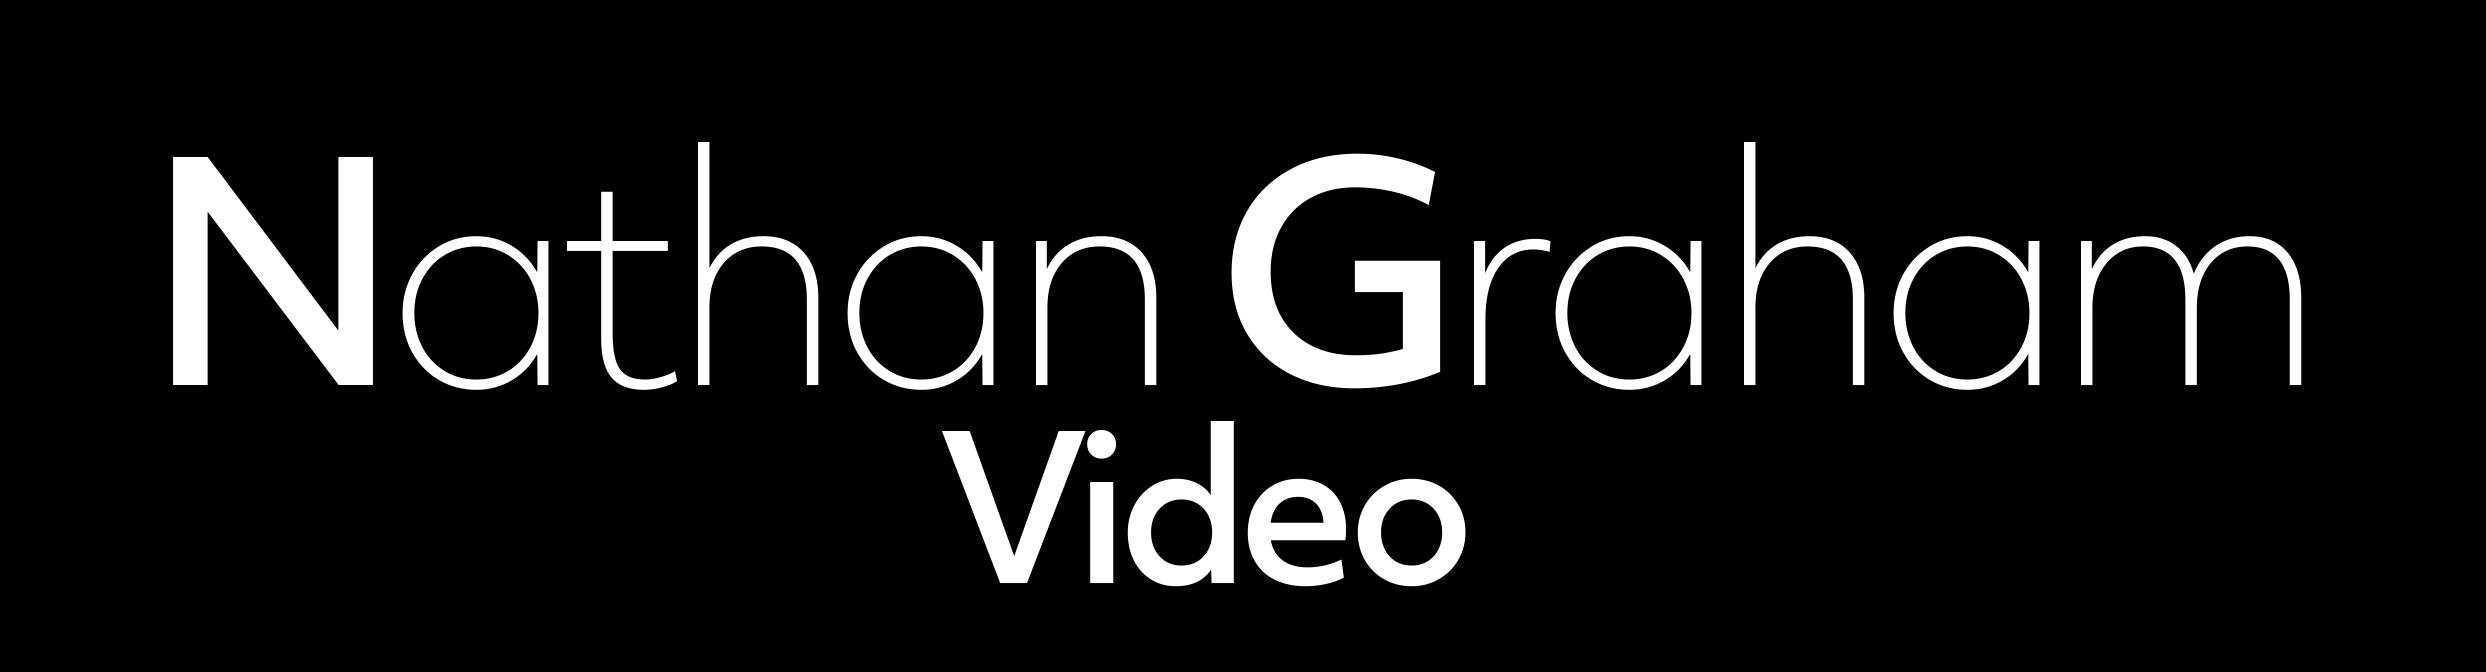 NATHAN GRAHAM LOGO  FINAL.png